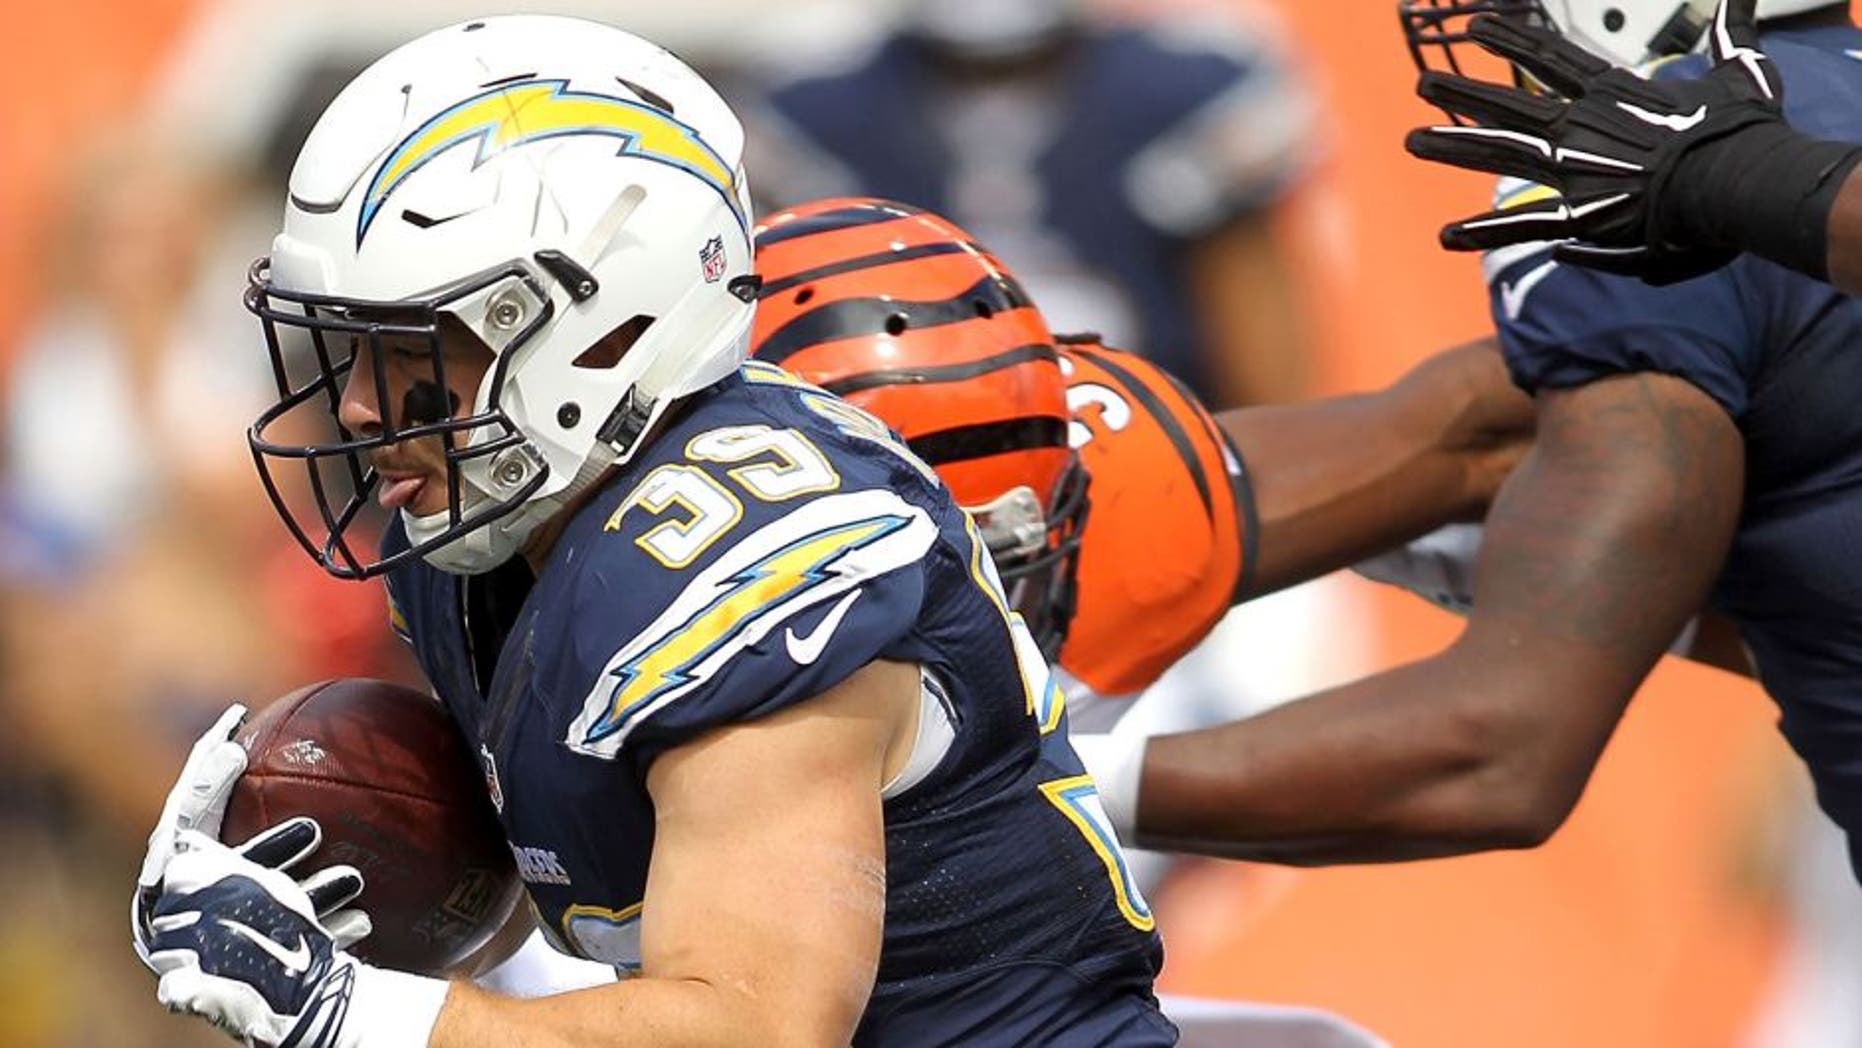 CINCINNATI, OH - SEPTEMBER 20: Danny Woodhead #39 of the San Diego Chargers carries the ball during the third quarter of the game against the Cincinnati Bengals at Paul Brown Stadium on September 20, 2015 in Cincinnati, Ohio. (Photo by John Grieshop/Getty Images)